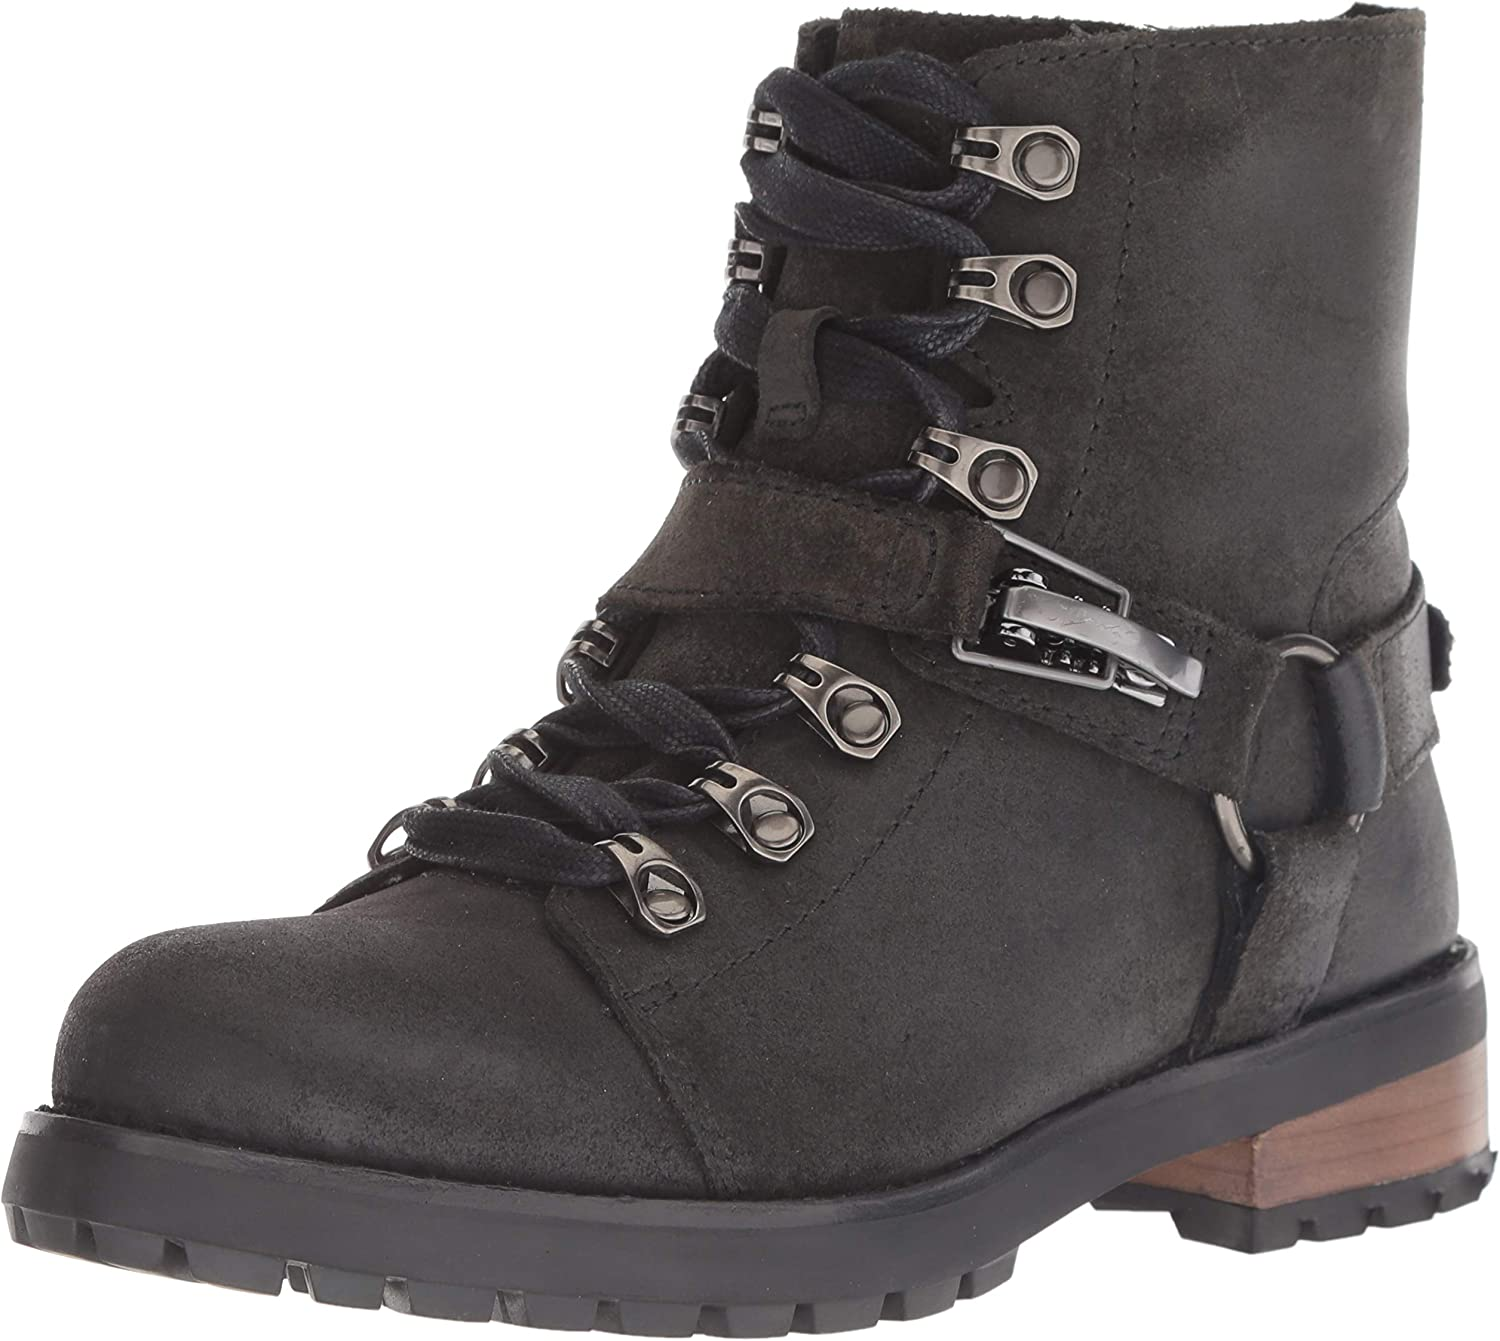 Gifts UGG Women's W Fritzi Lace-up Outlet ☆ Free Shipping Boot Fashion